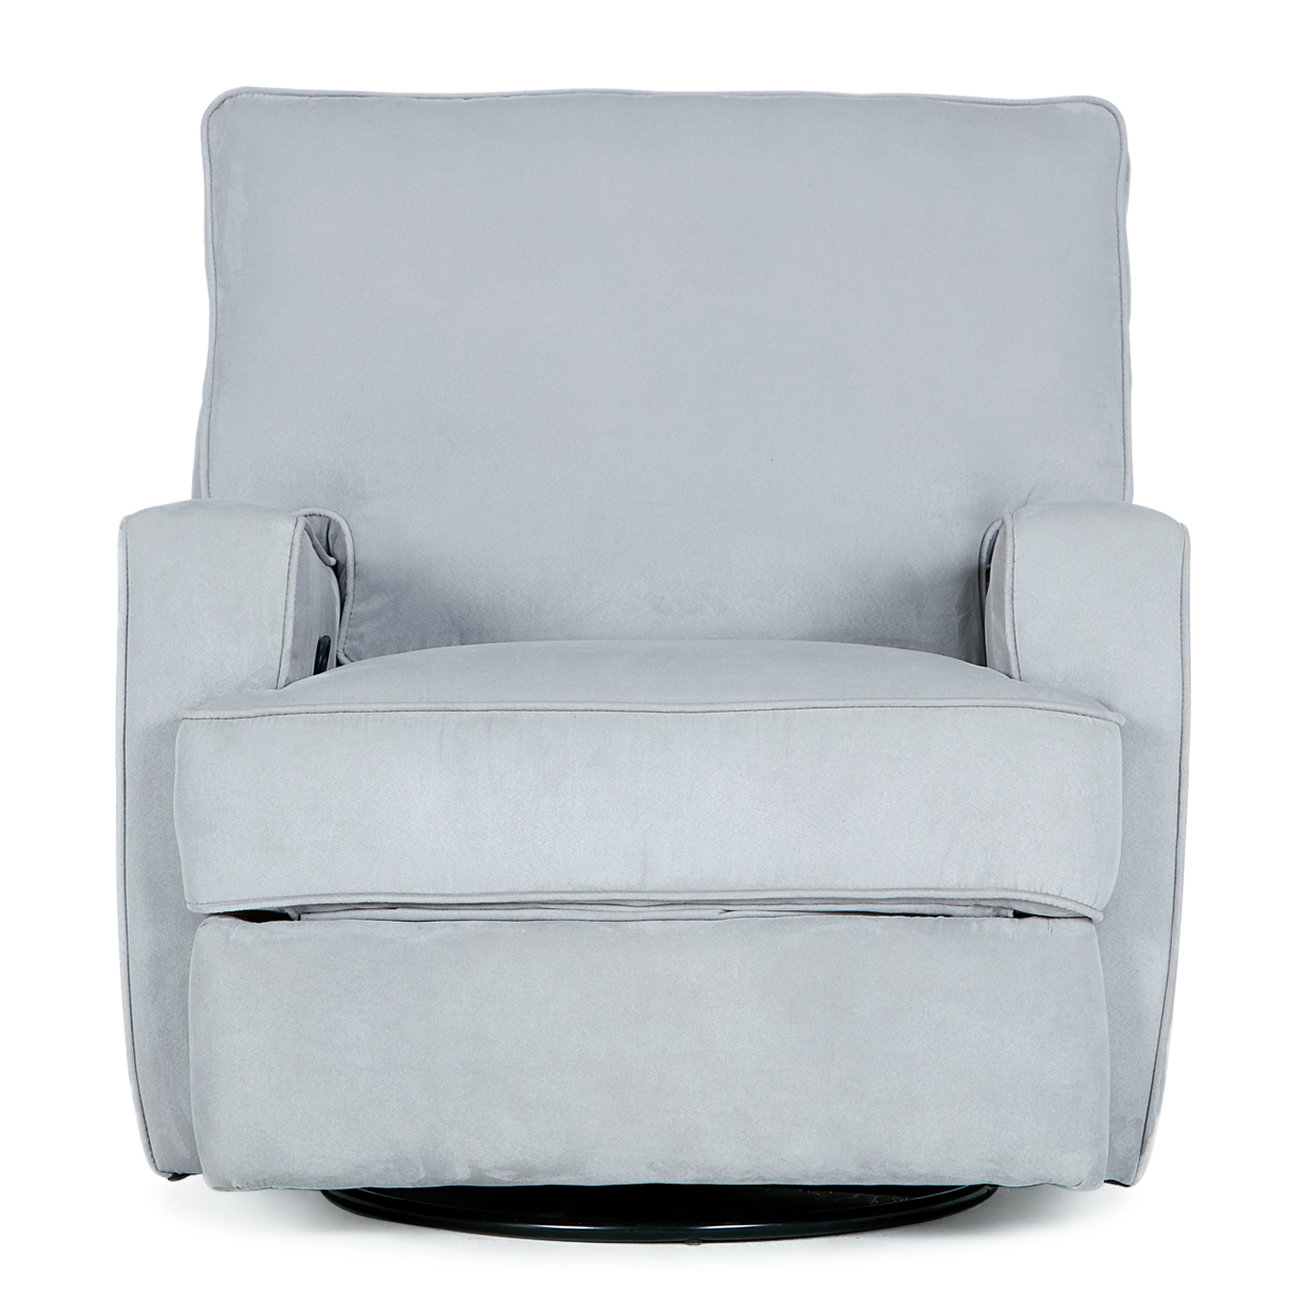 Darby Home Co Finck Manual Swivel Recliner | Wayfair With Regard To Dale Iii Polyurethane Swivel Glider Recliners (Image 7 of 20)